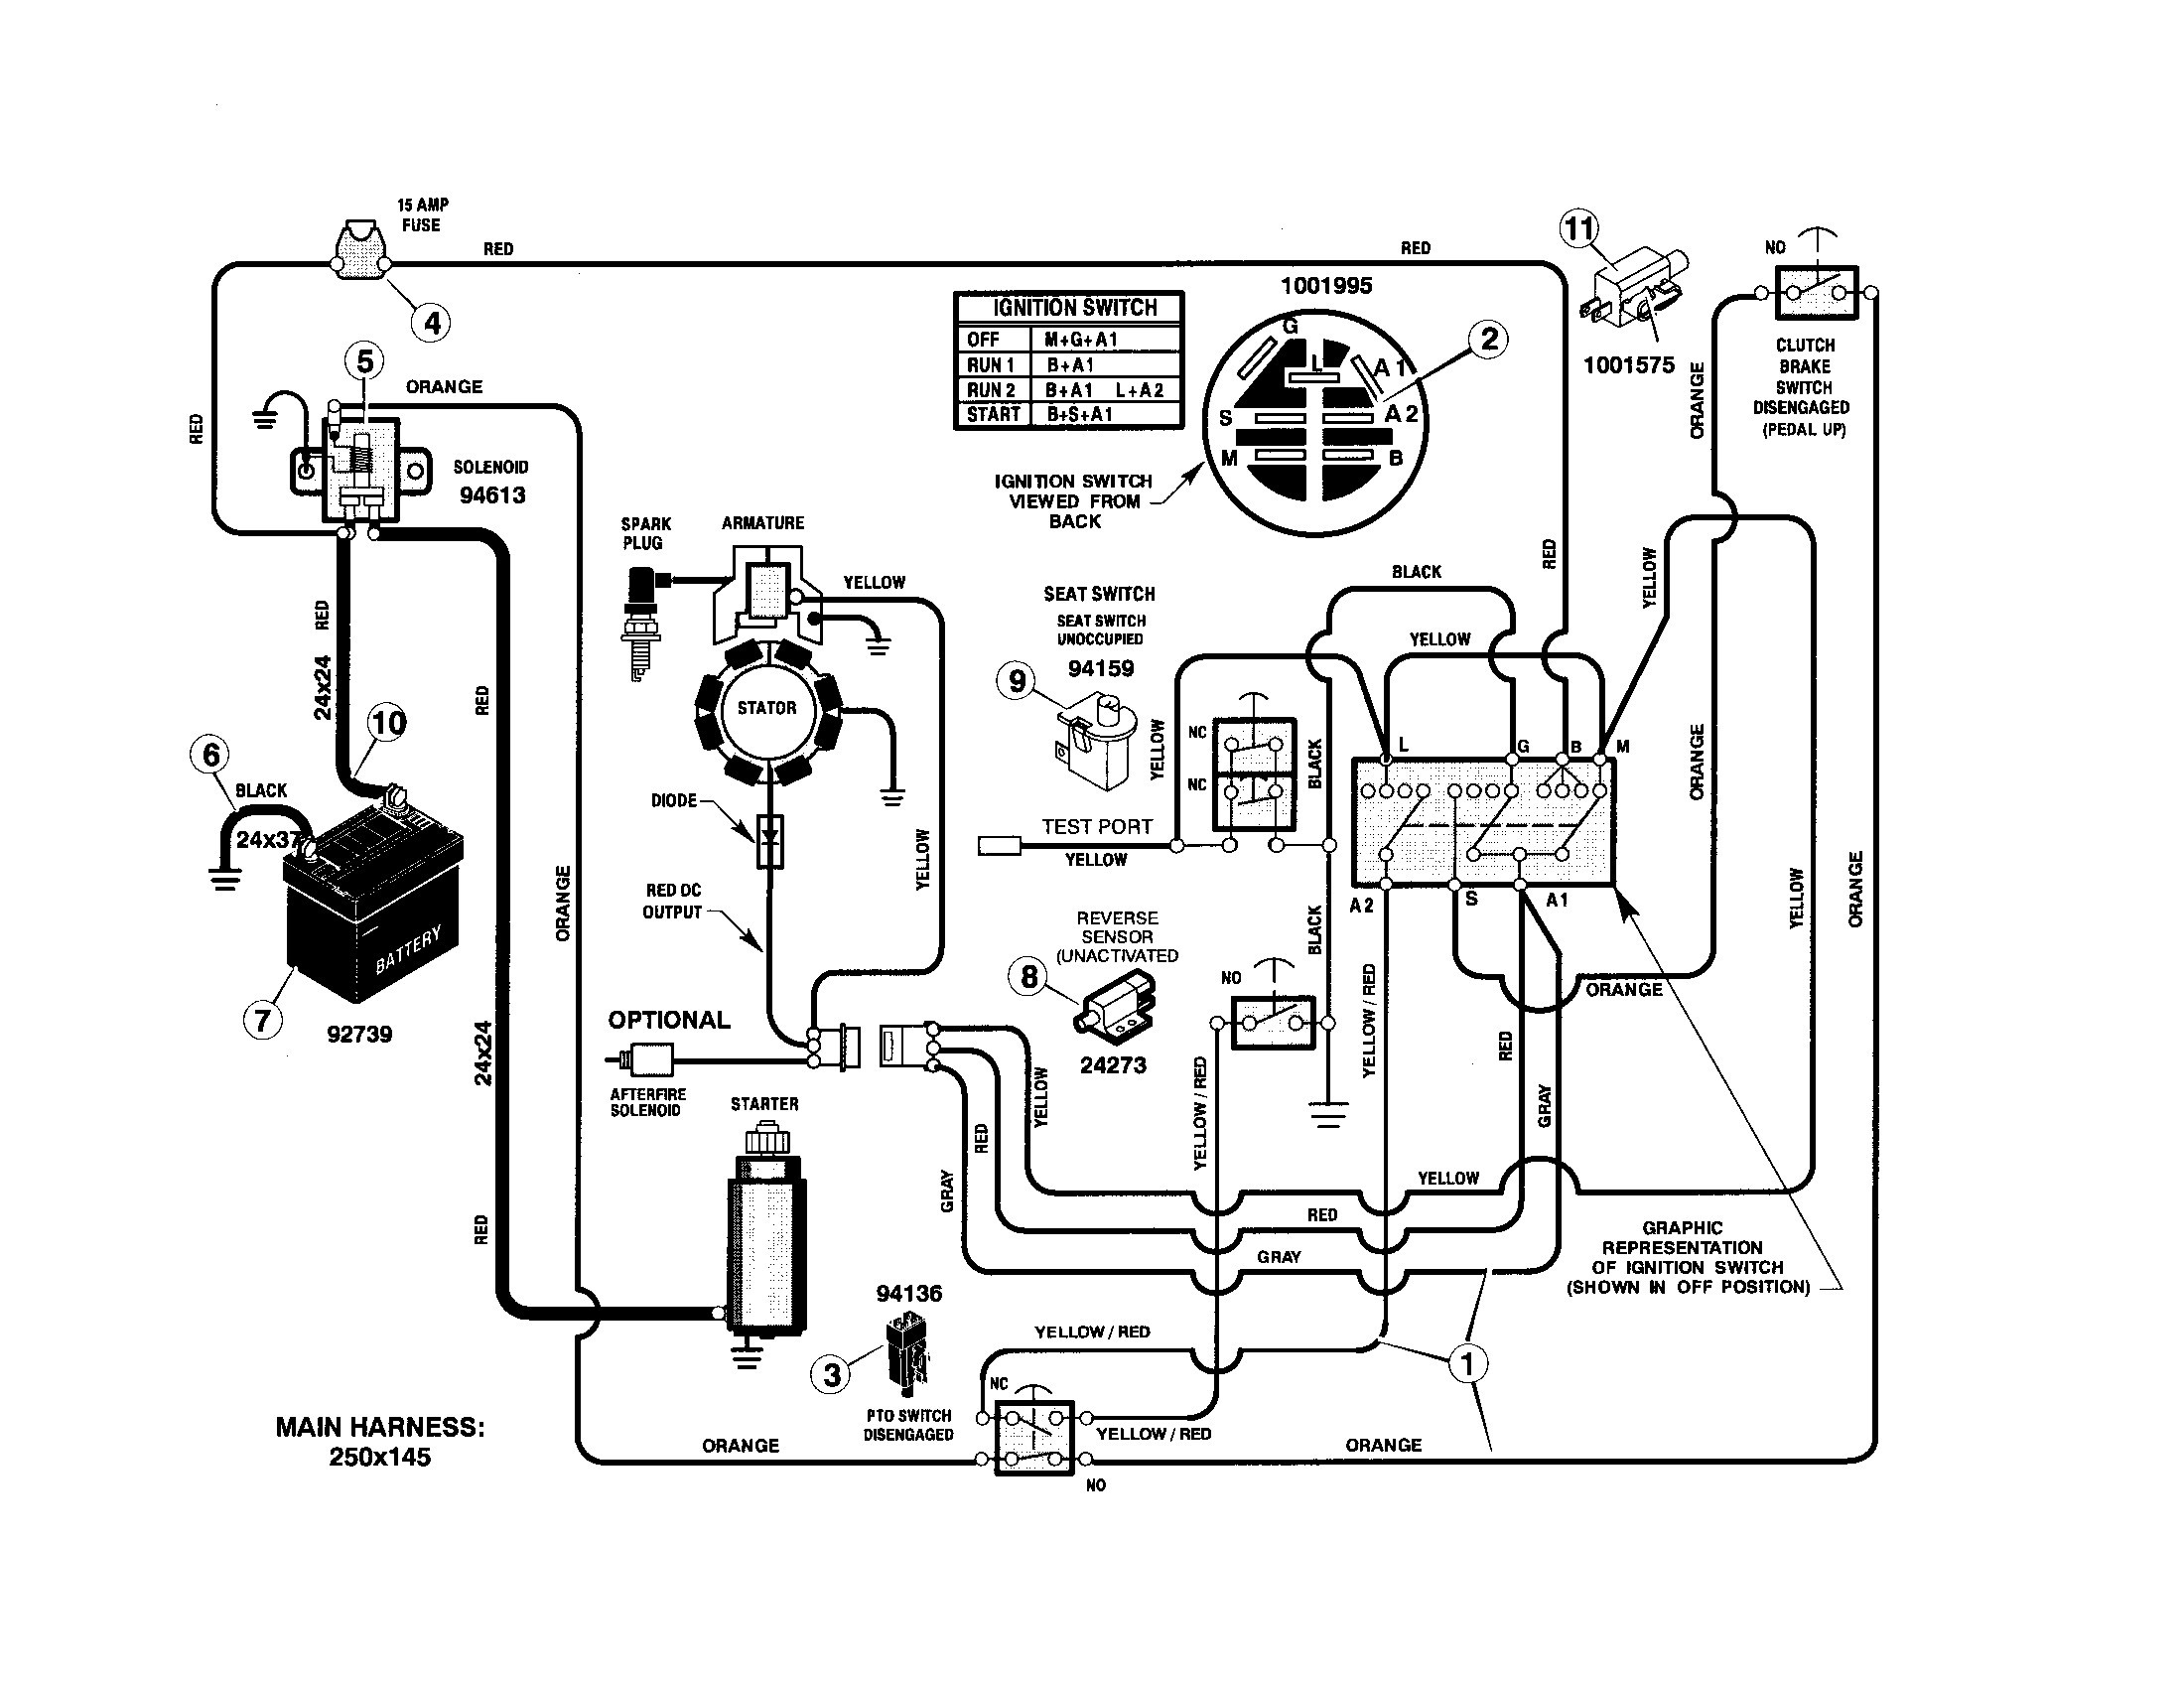 snapper mower electrical diagram 584 wiring diagram for snapper 2681s wiring library  584 wiring diagram for snapper 2681s